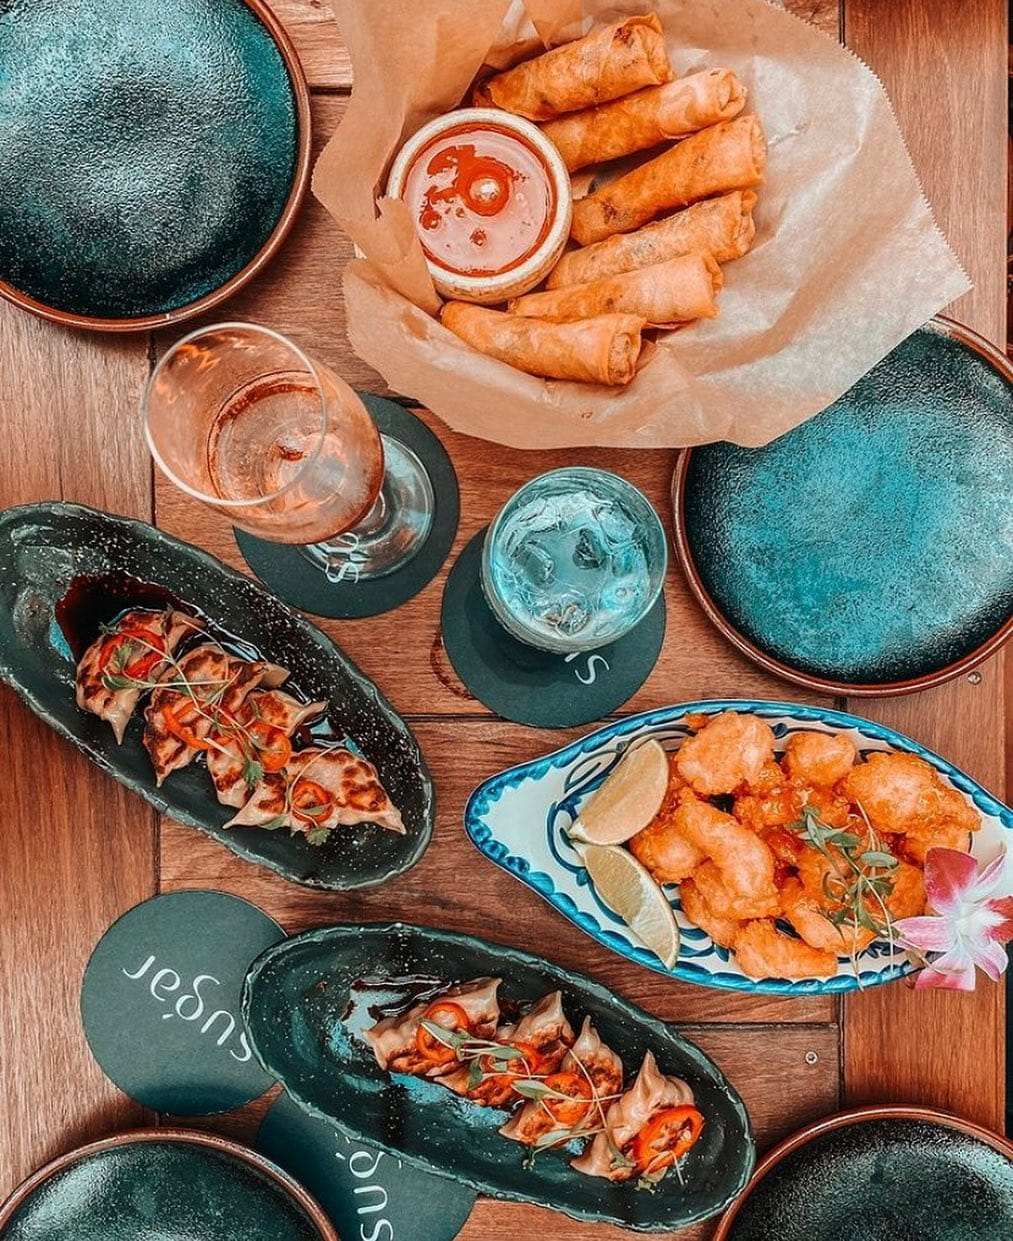 Today calls for Asian-tapas, cocktails and sunset colors at #SugarMiami. Open daily at 4pm.  📸: @thebrickellscoop  . . . #atEAST #EASTMiami #EASThotels #BrickellMiami #travel #getaway #vacation #ilovetravel #jetsetter #holiday #miamihotels #travelpics #passportready #miamilife #instavacation #wanderlust #luxurytravel #letswander #globetrotter #travelgram #luxuryworldtraveler #beautifuldestinations #letsgosomewhere #brickelllife #Miami #brickell #brickellliving #SwireHotels